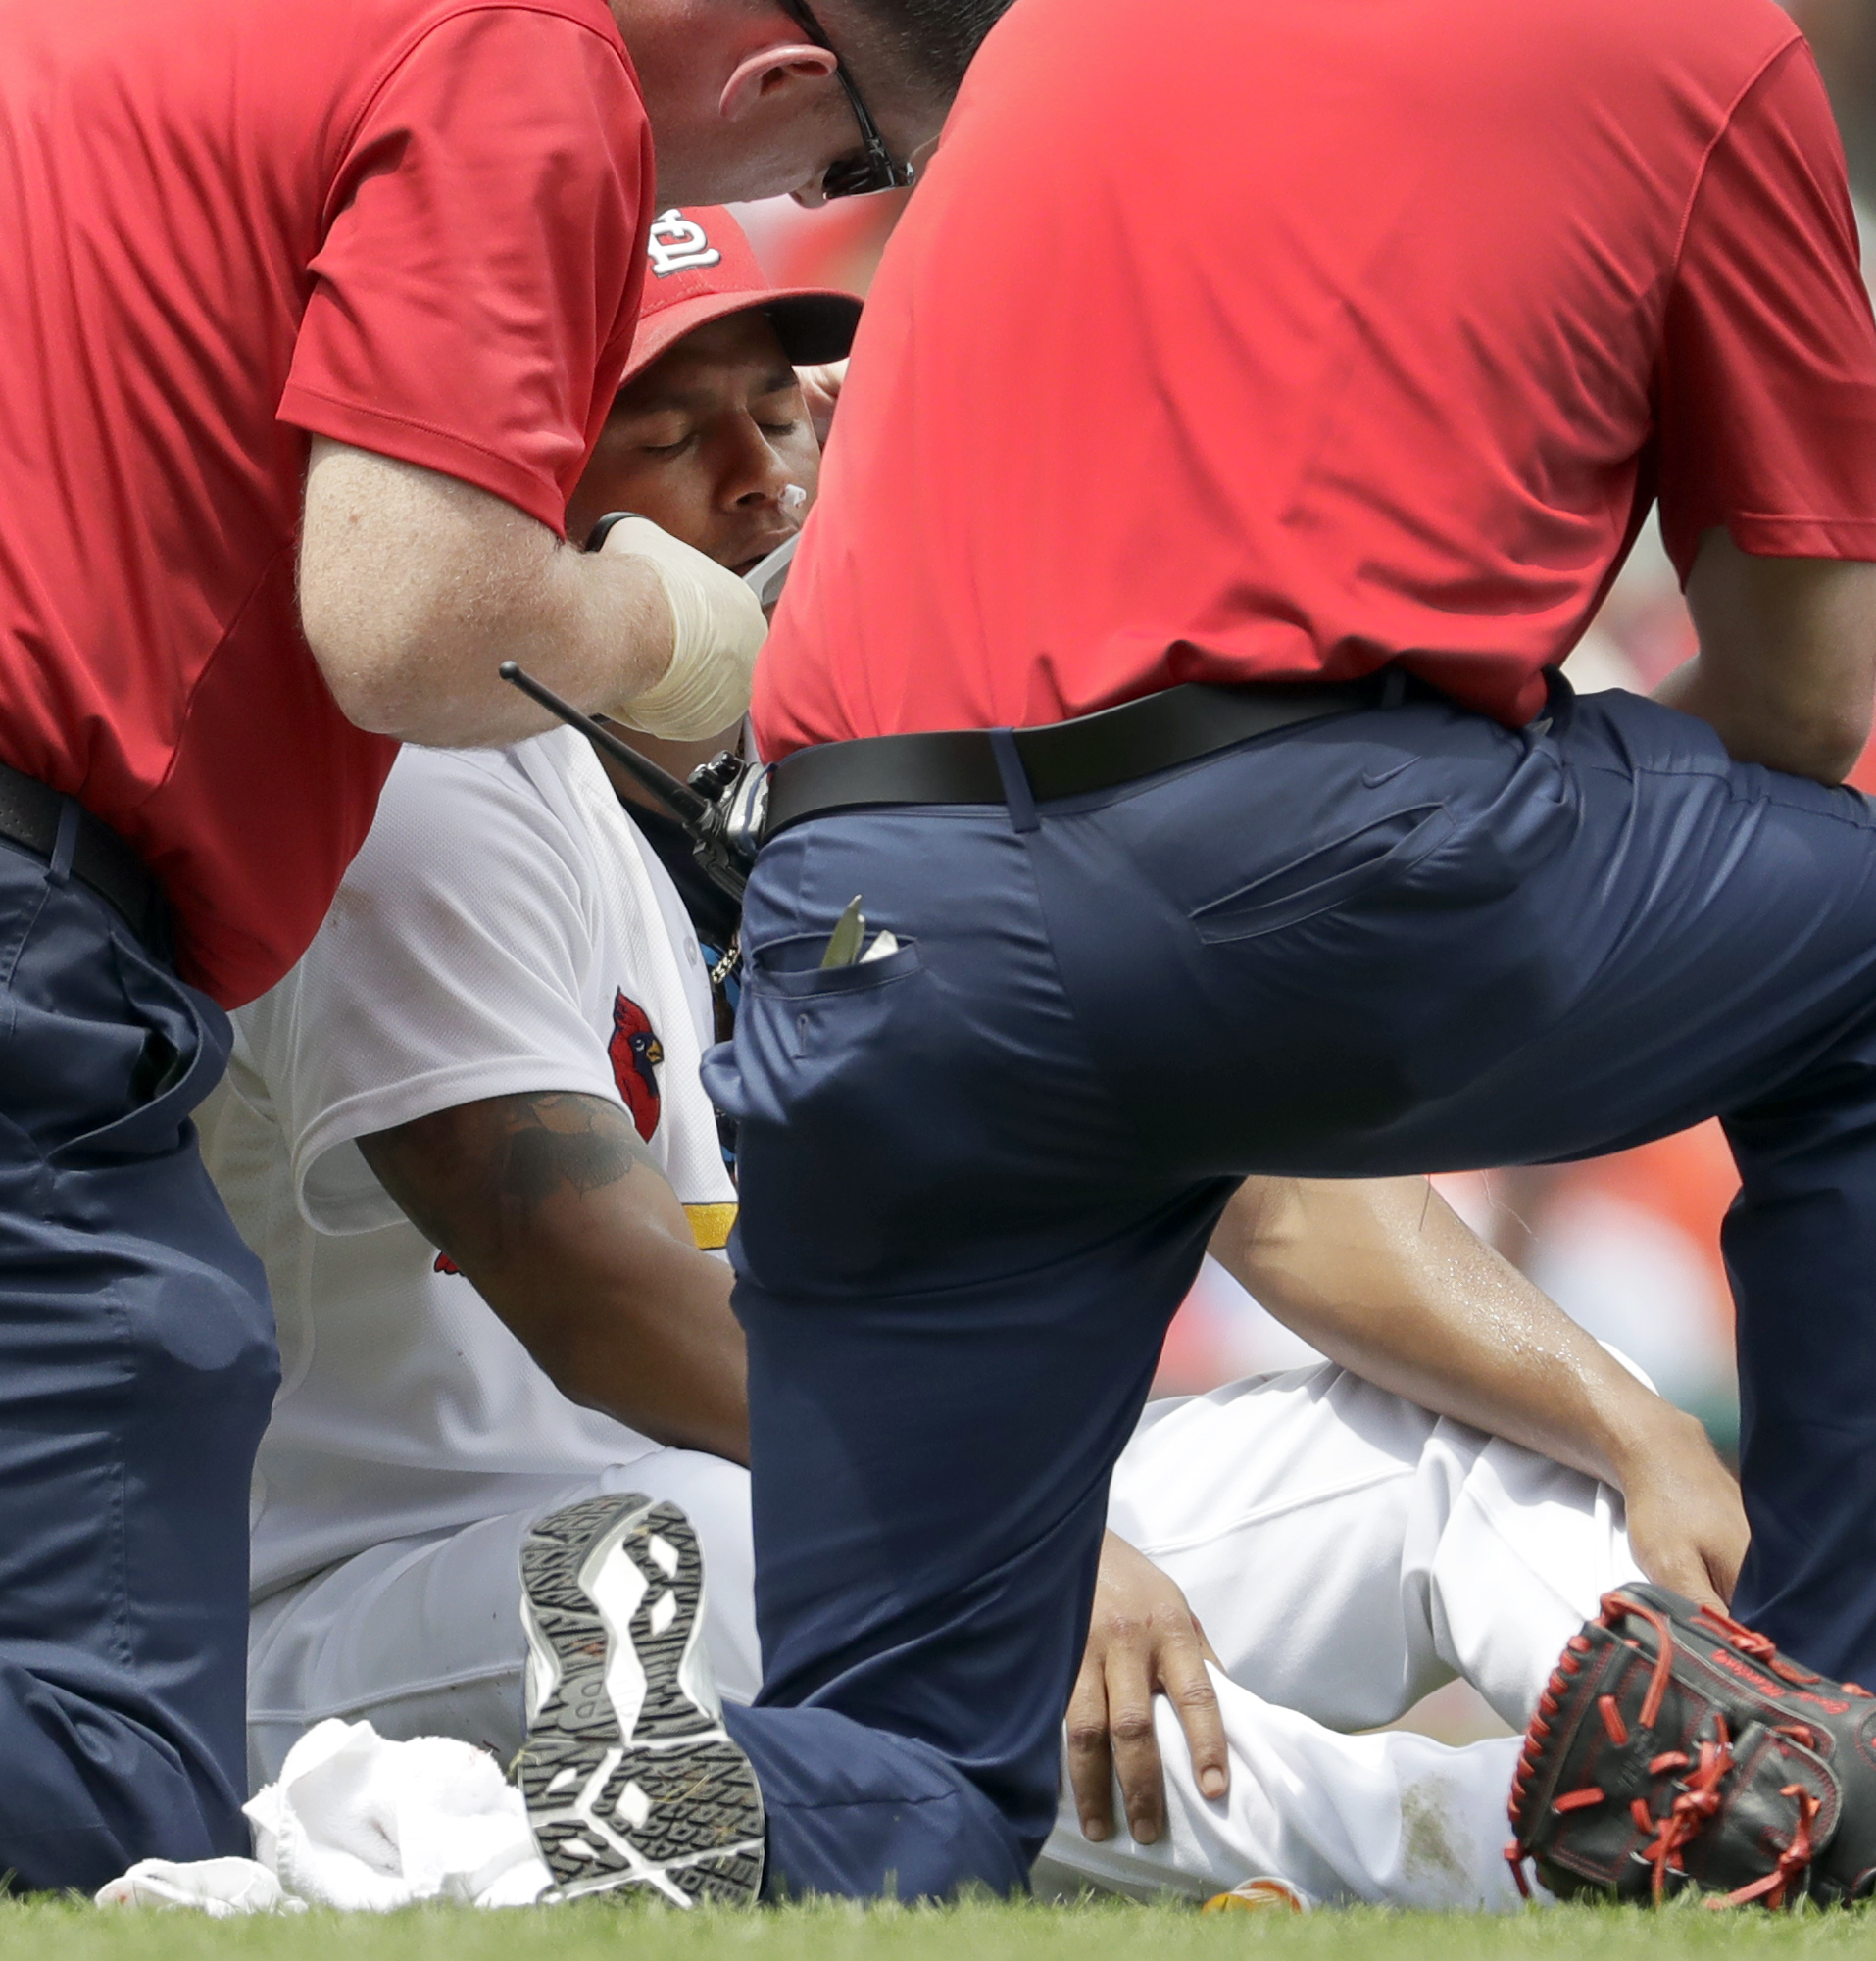 St. Louis Cardinals starting pitcher Carlos Martinez is tended to by trainers after getting a nose bleed during the second inning in the first game of a baseball doubleheader against the San Diego Padres Wednesday, July 20, 2016, in St. Louis. Martinez wa